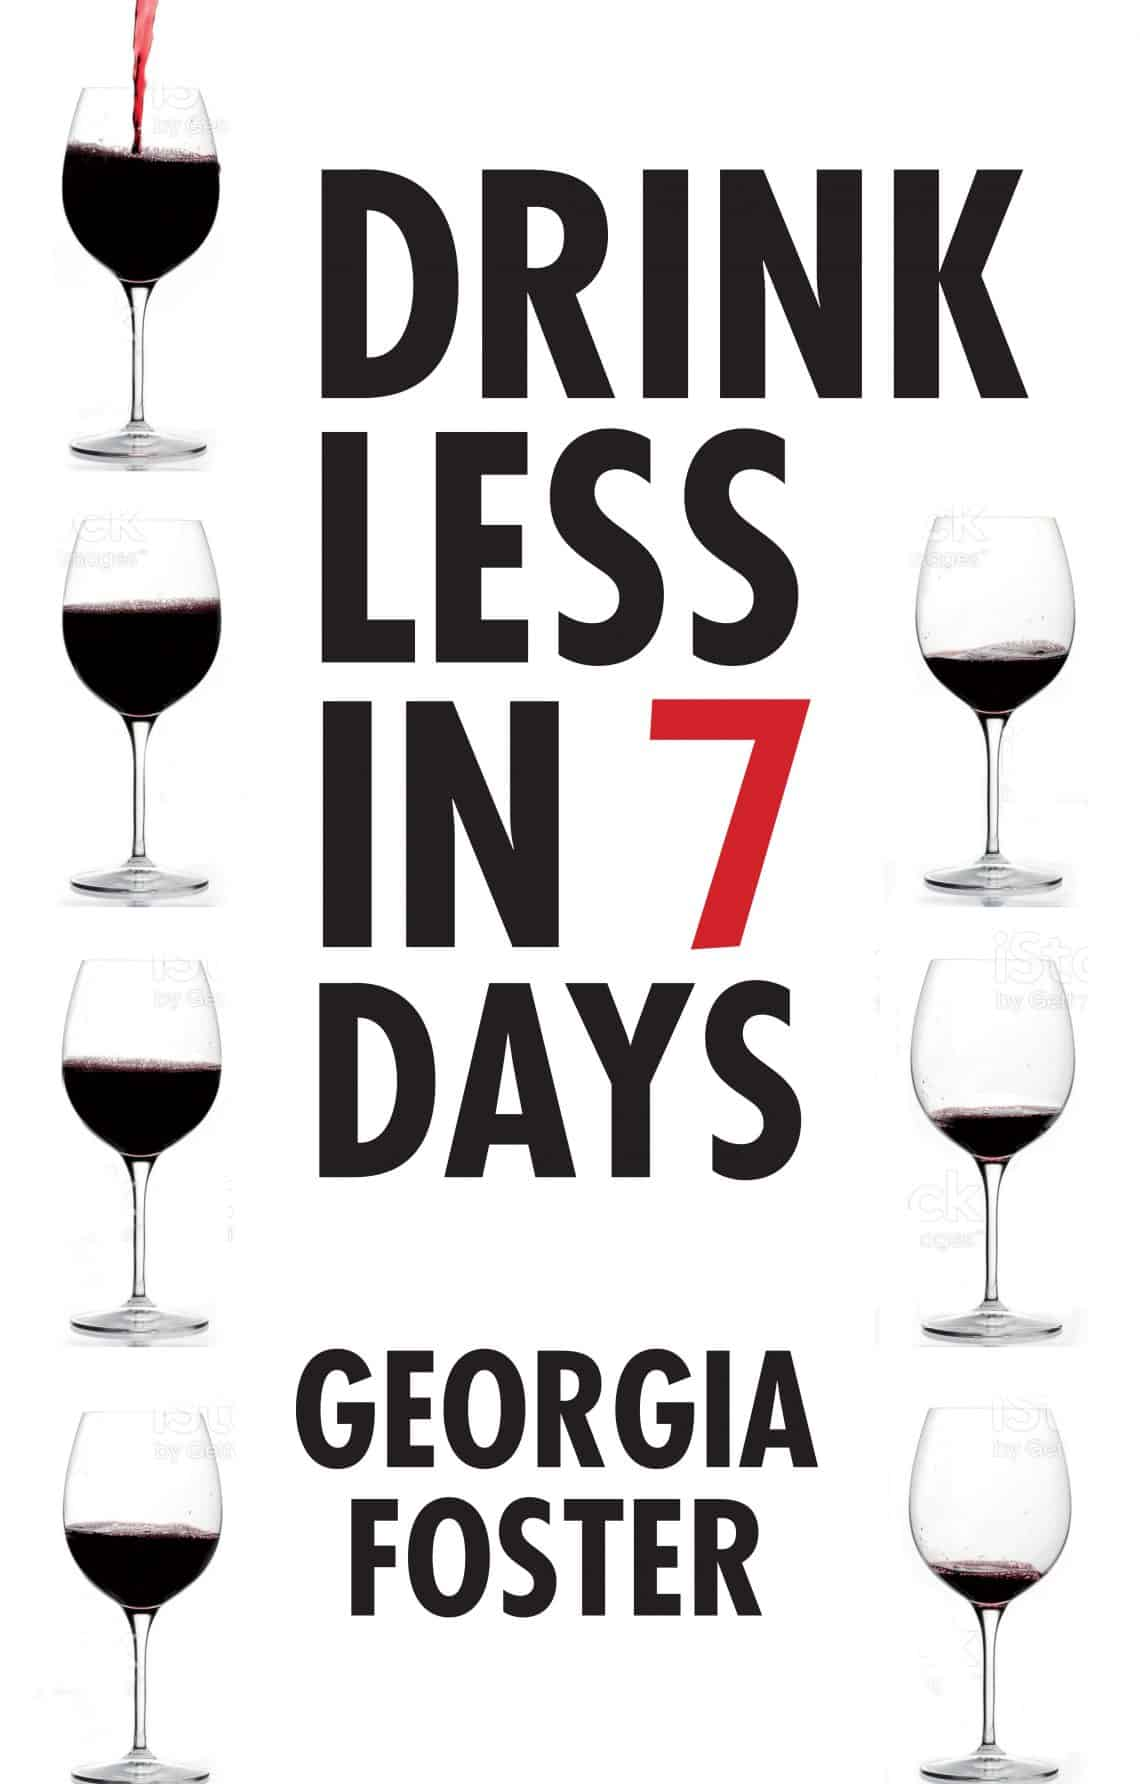 7 Days to Drink Less Table Of Contents